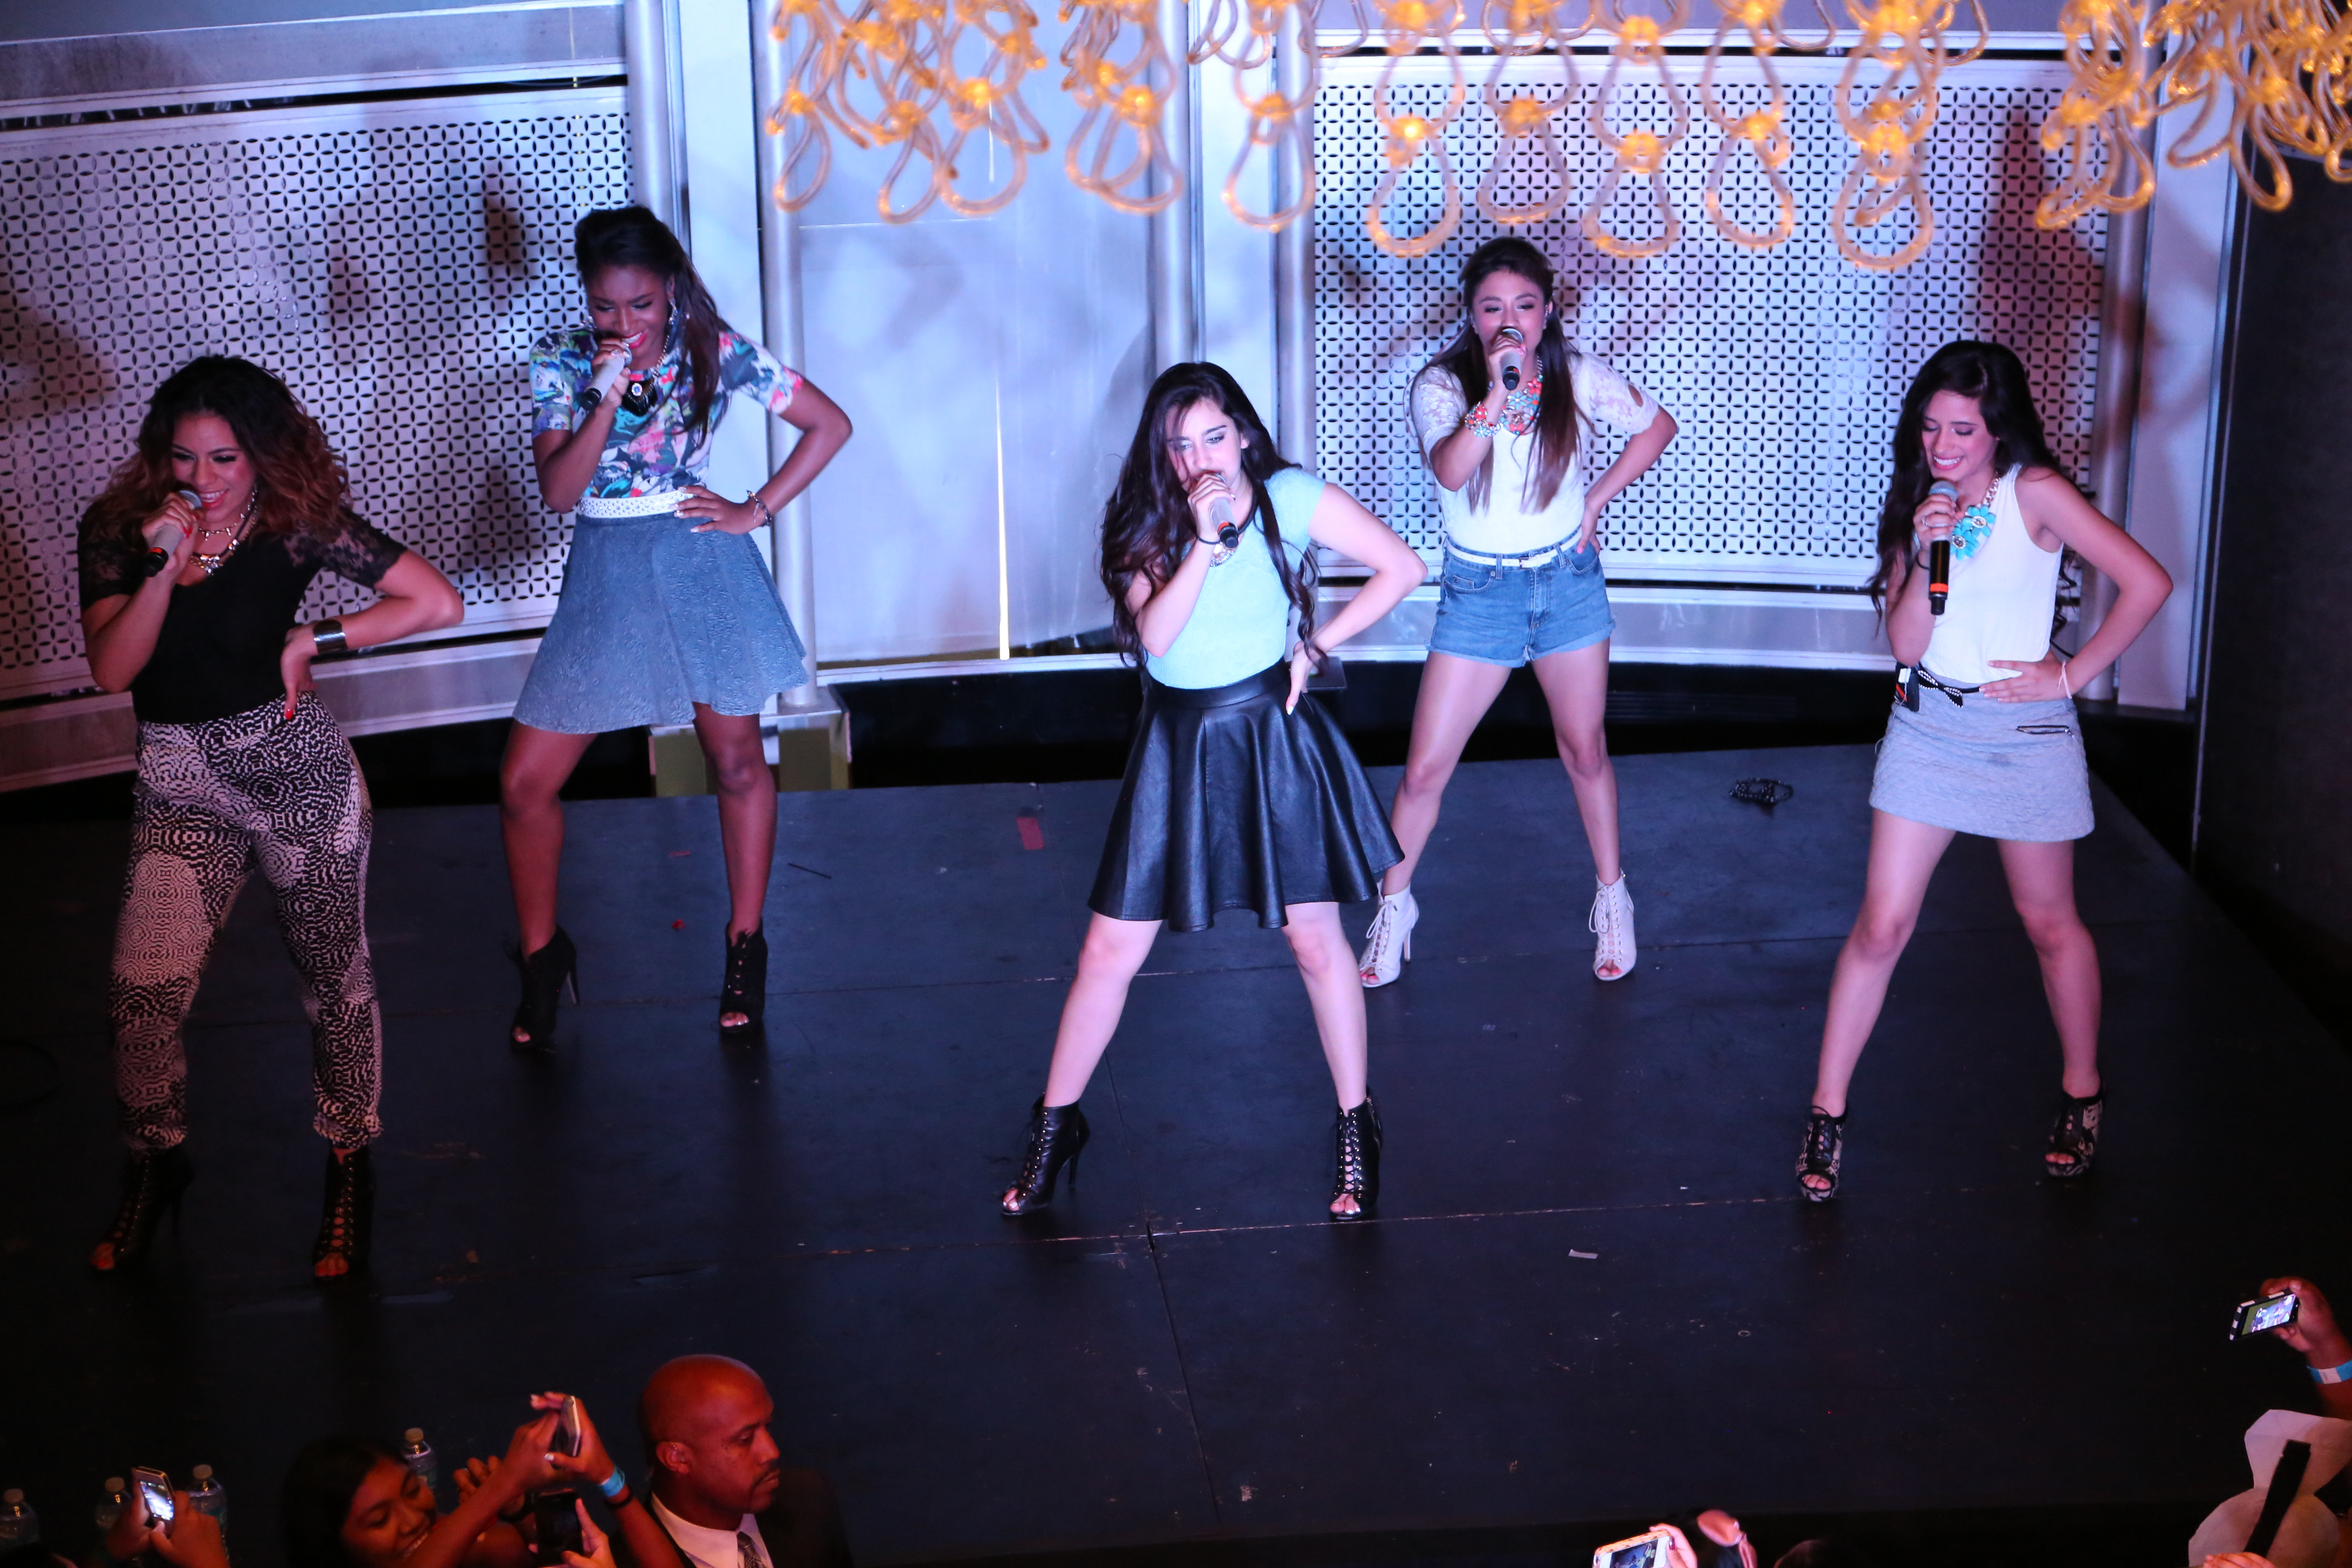 Depiction of Fifth Harmony